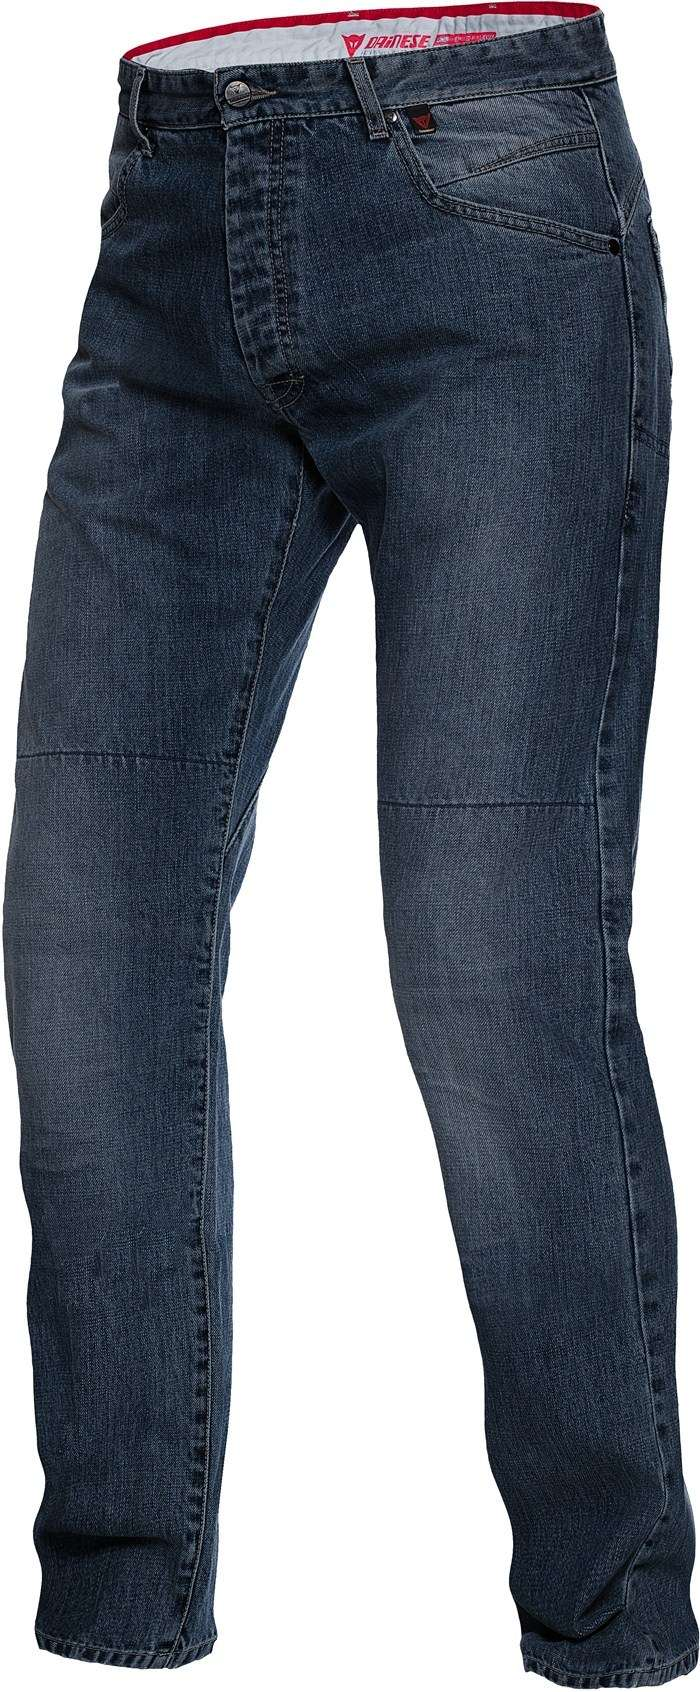 Jeans moto Dainese Bonneville regular Denim scuro